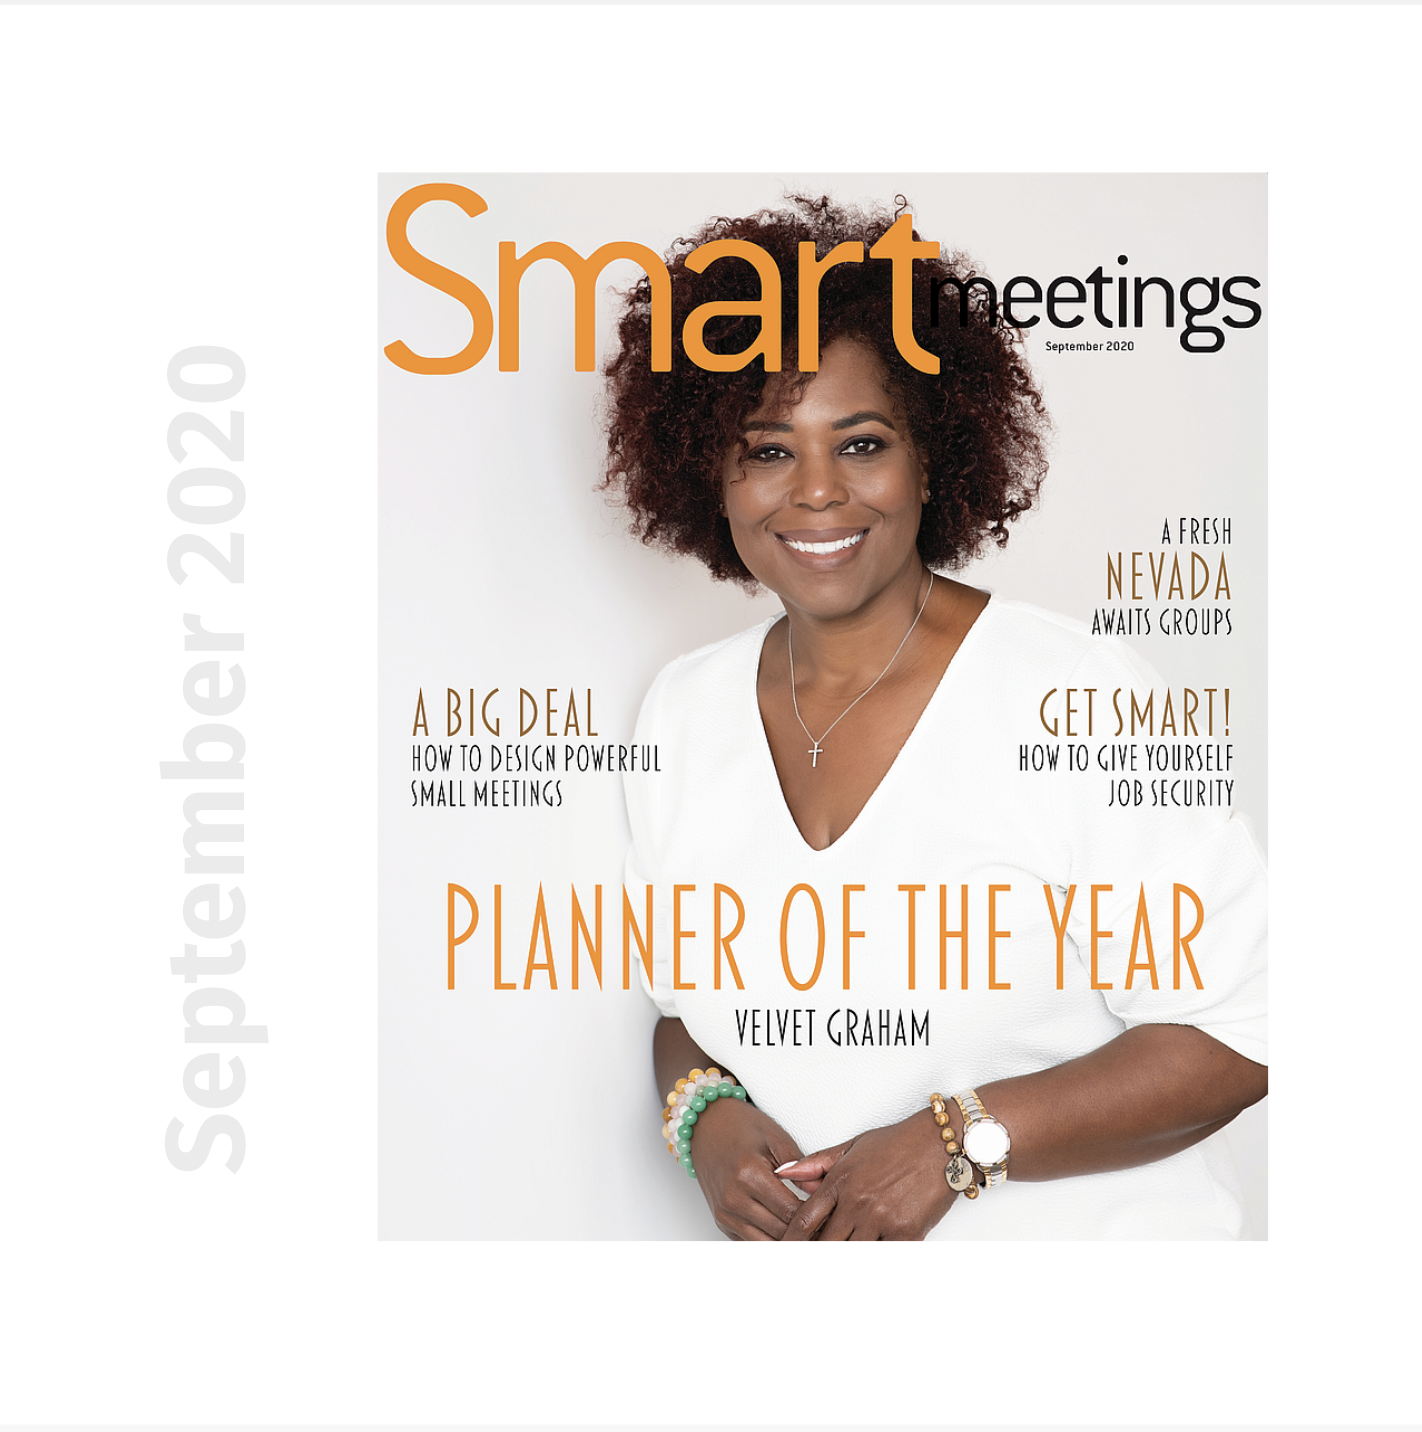 Meet the 2020 Planners of the Year in the September Issue of Smart Meetings Magazine